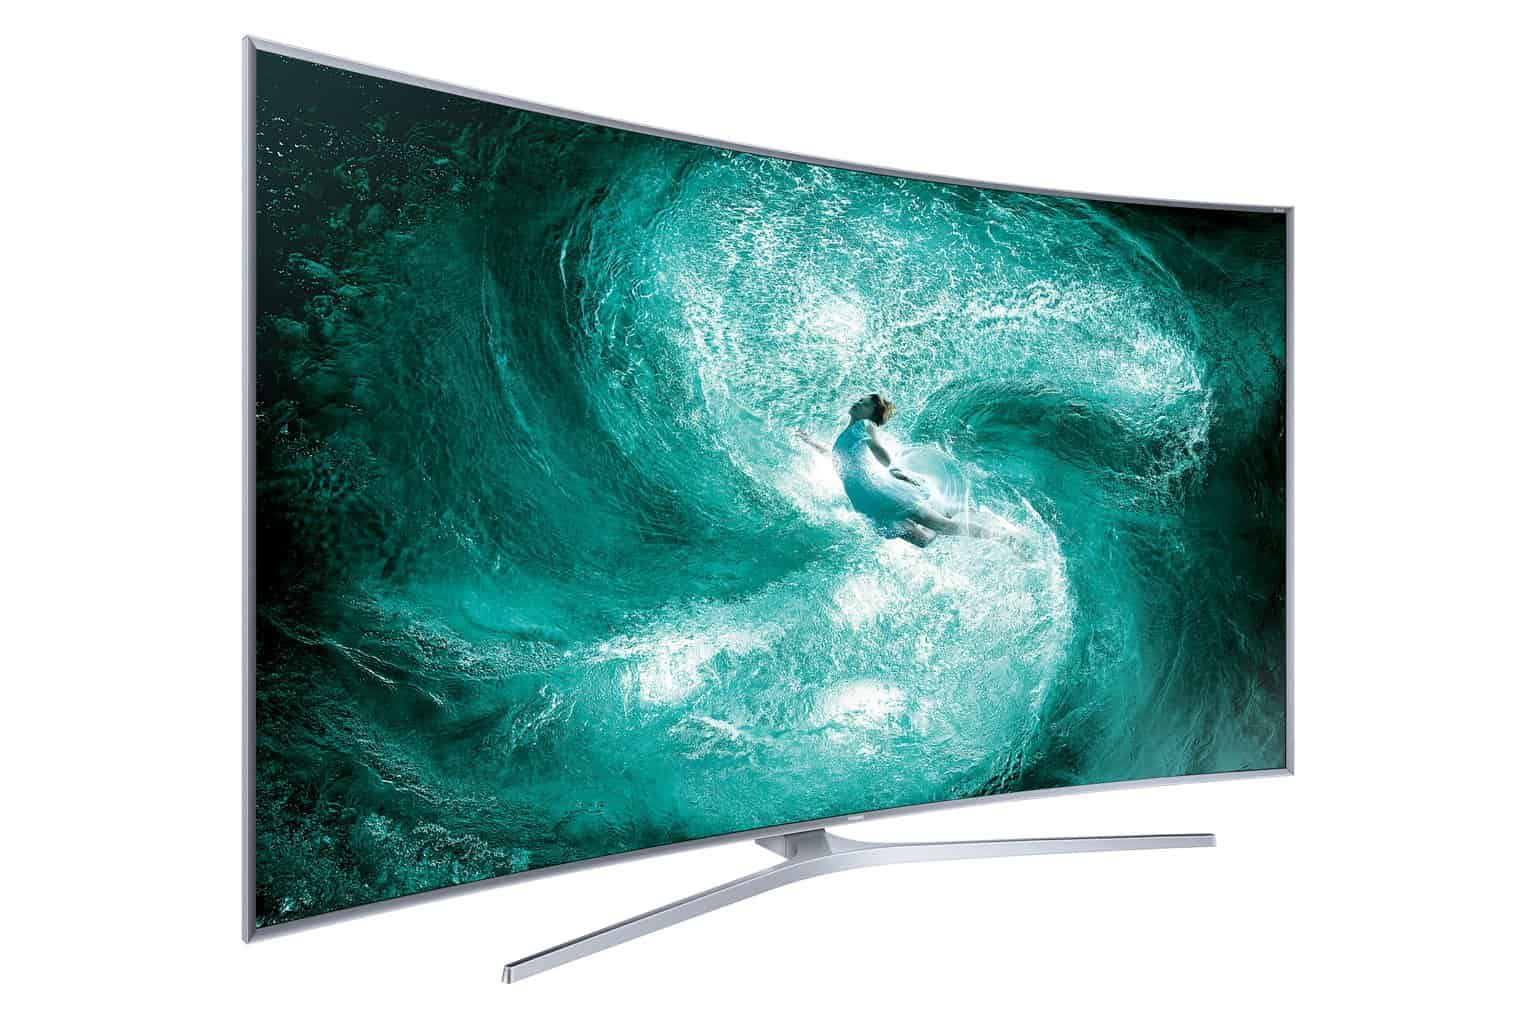 Samsung TV Bündle Aktion